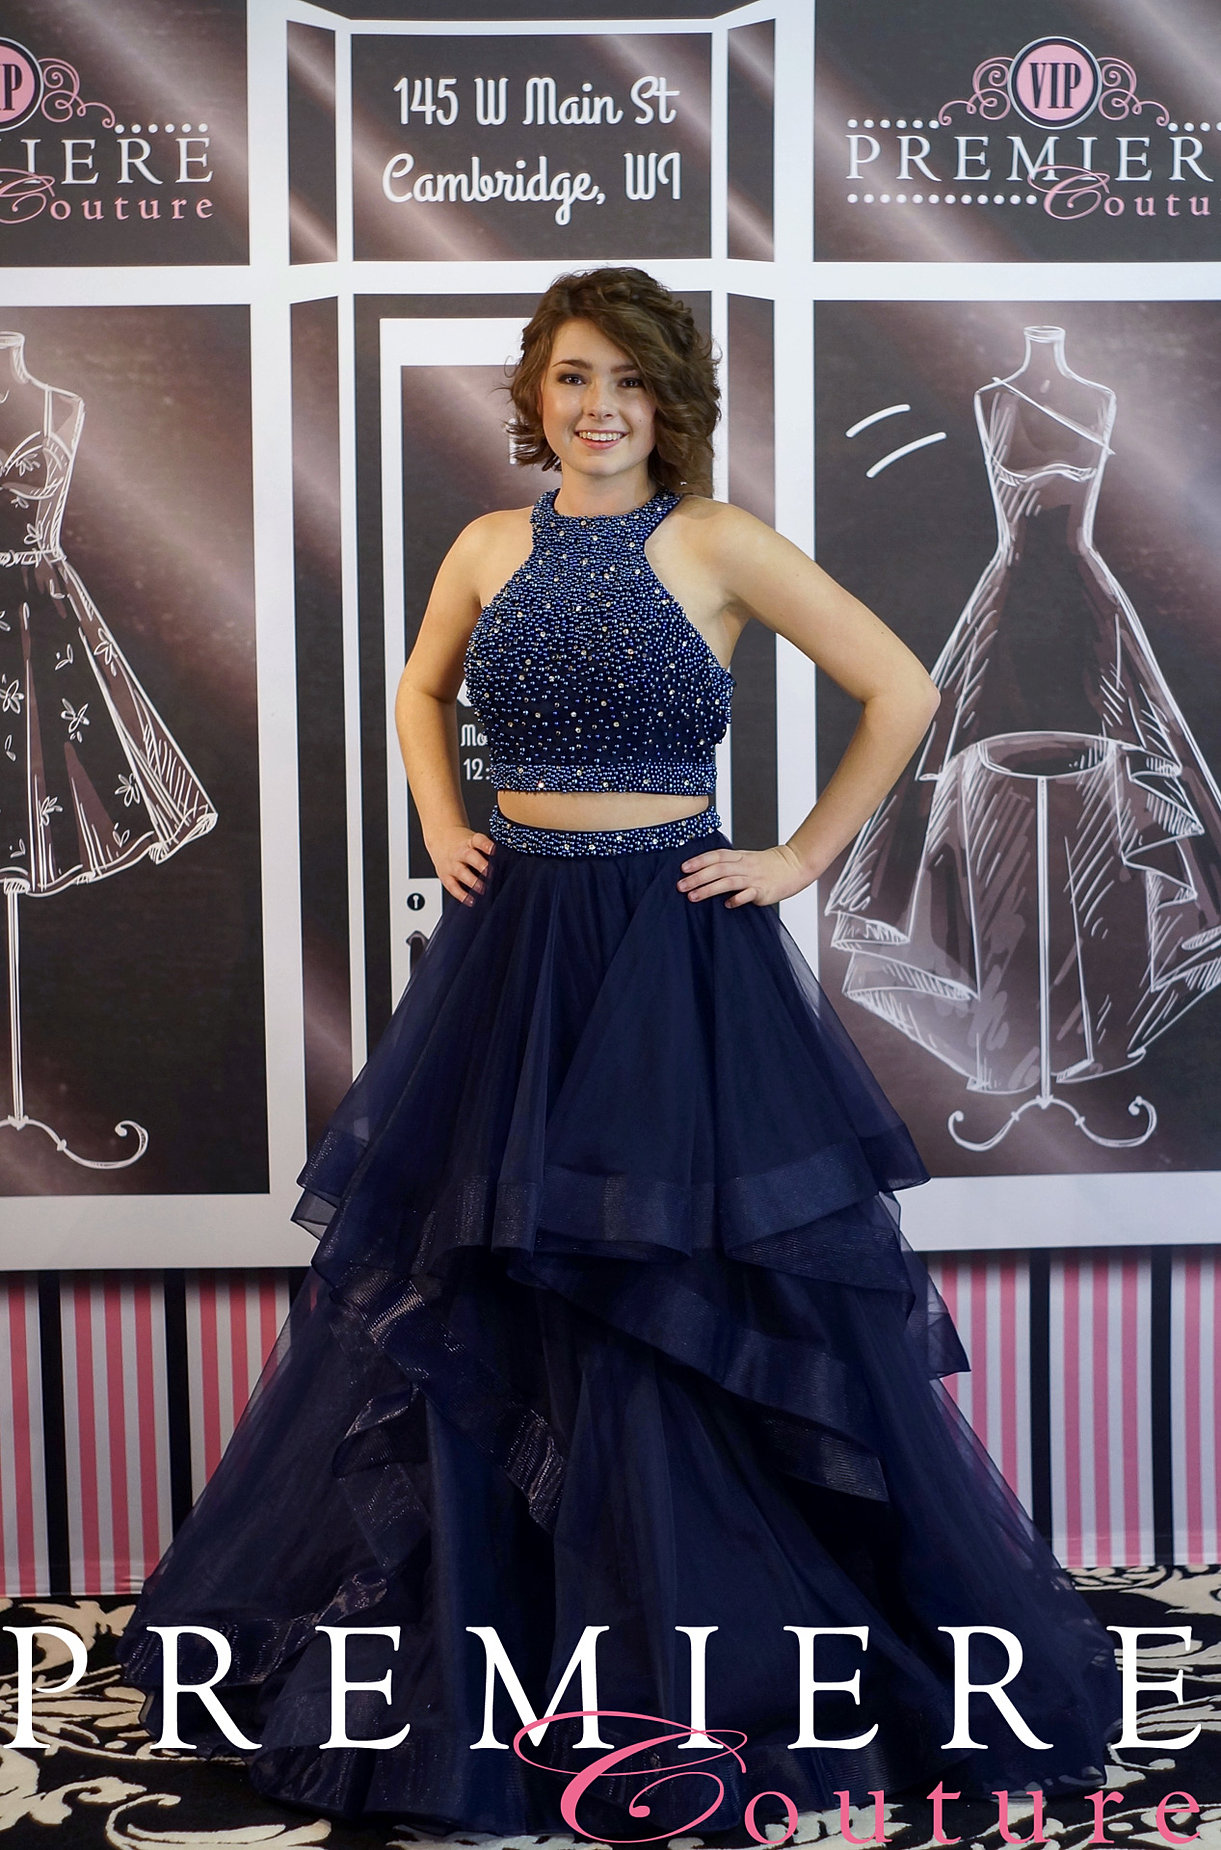 Fantastic Prom and Homecoming at Premiere Couture